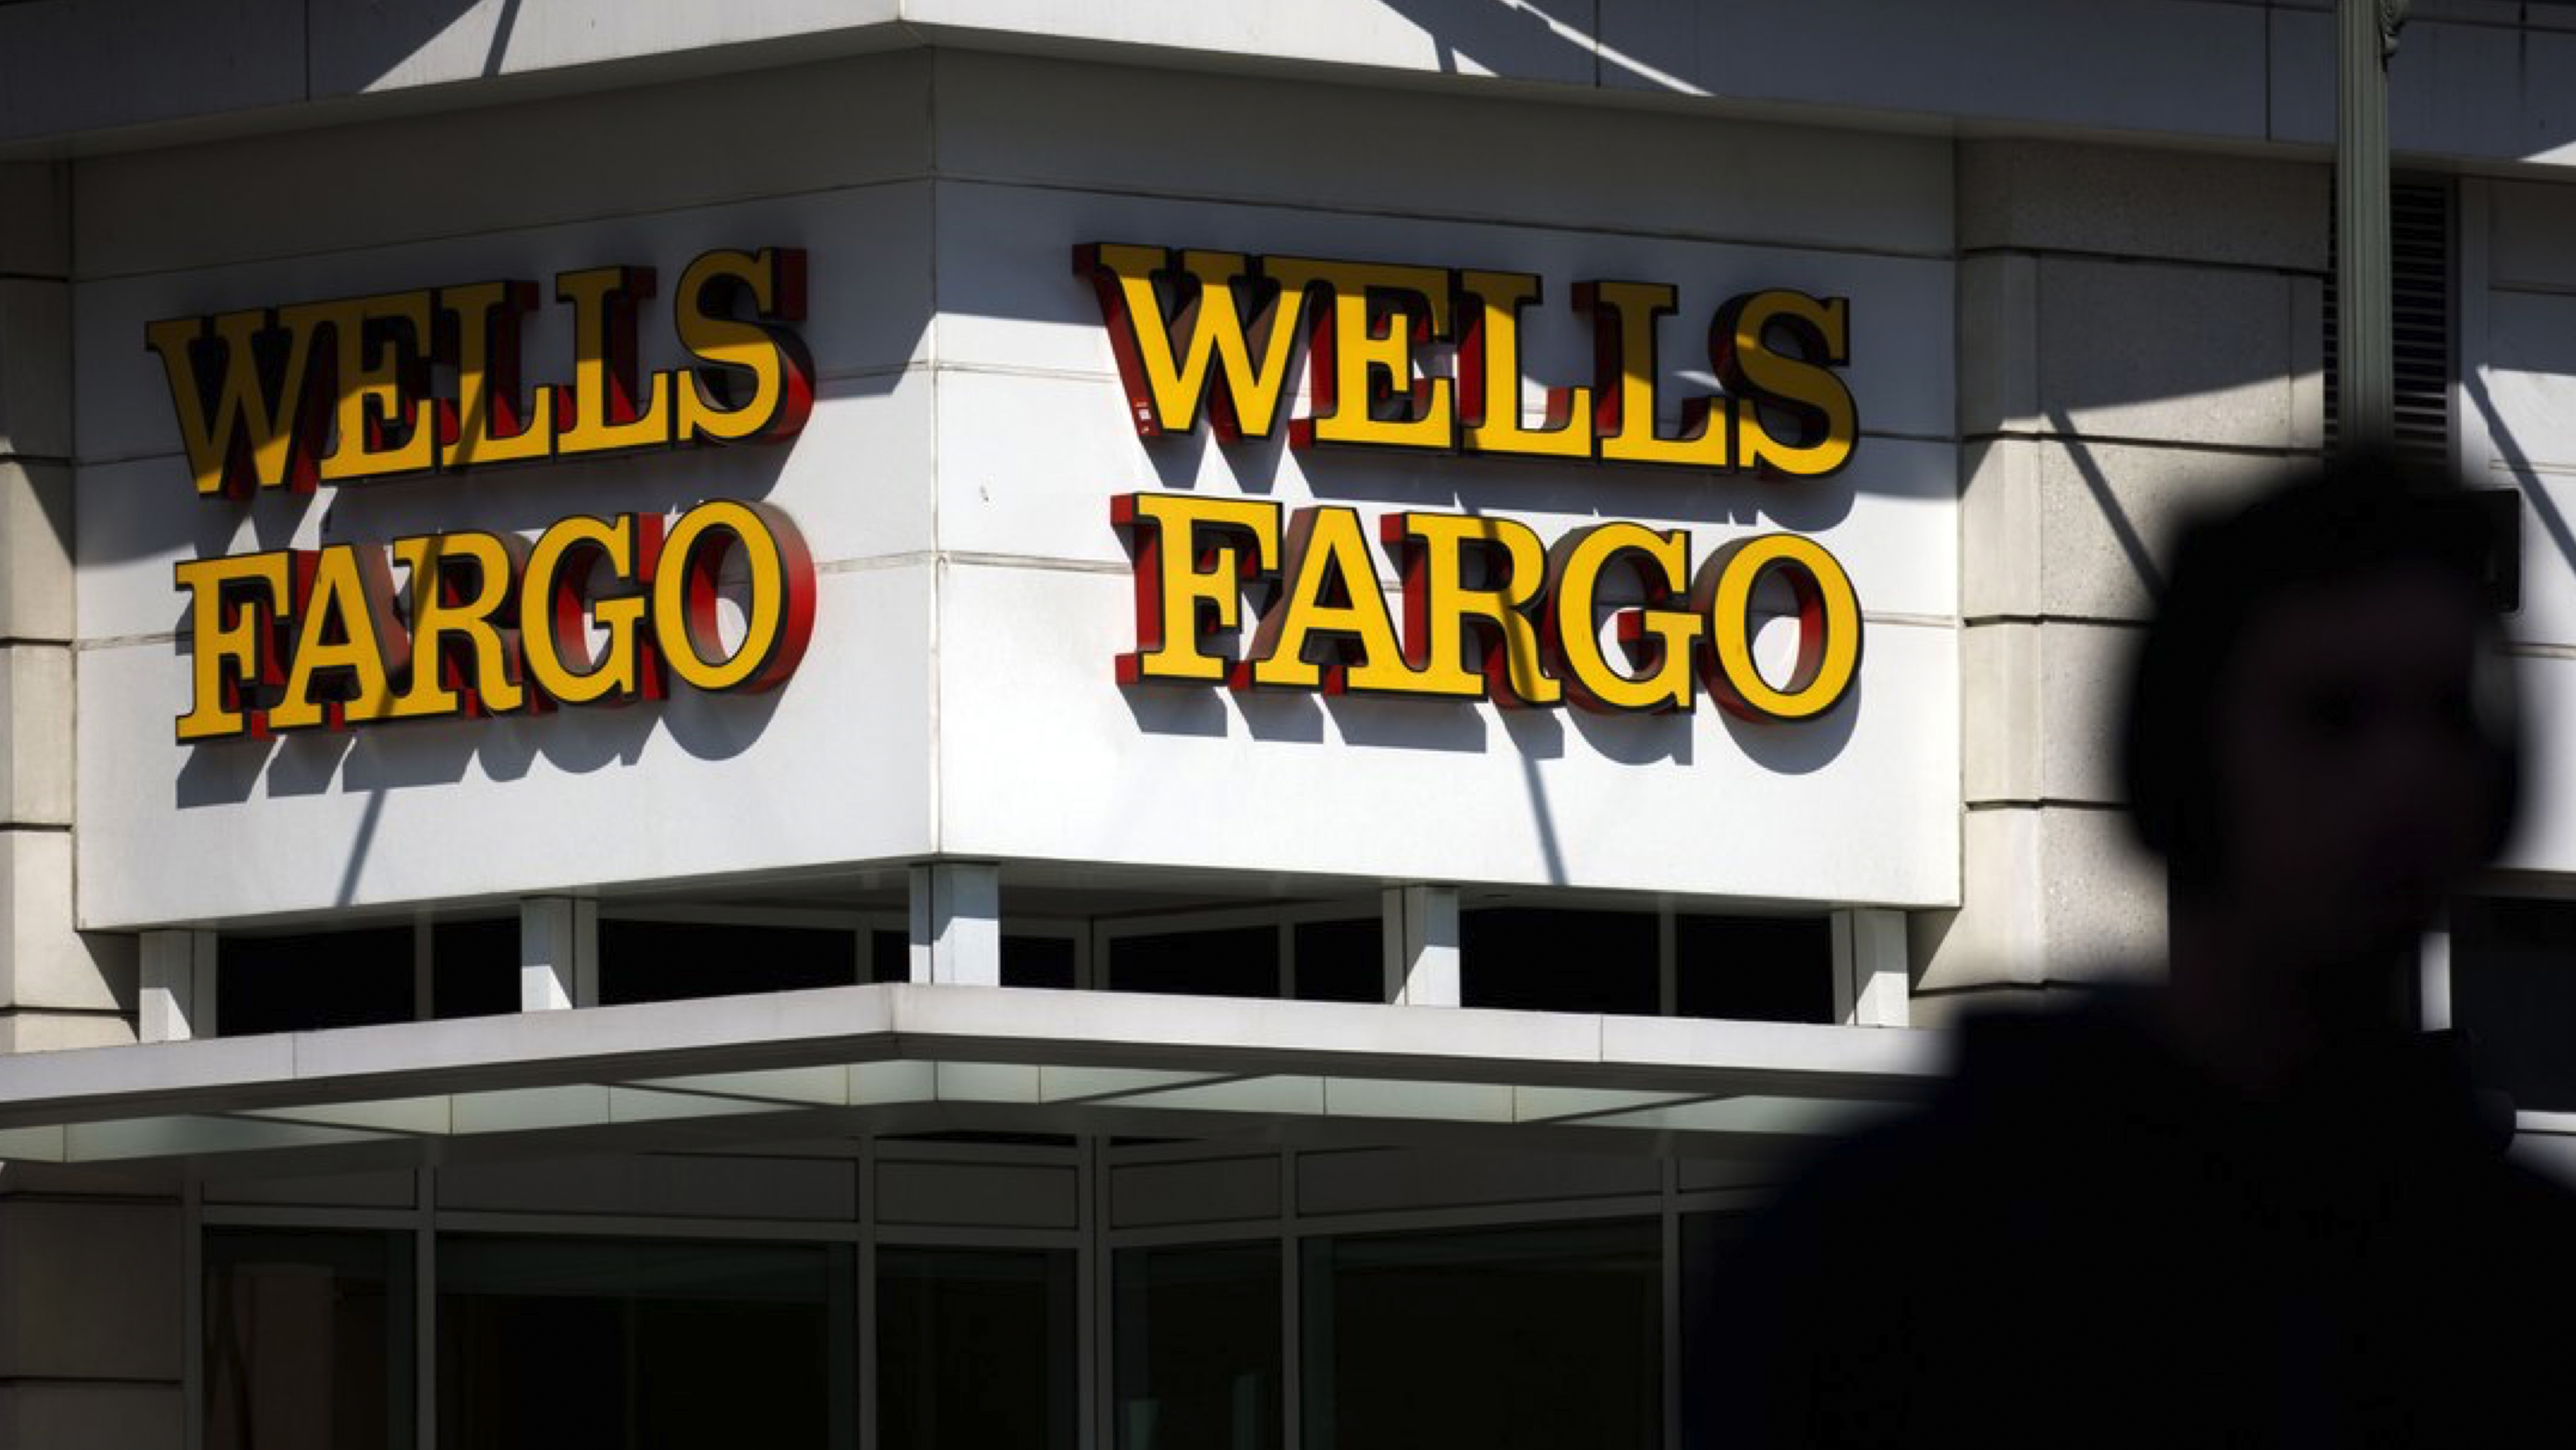 Wells Fargo has been in Washington, D.C., since 1914, with its first location on G Street NW. Since then, local investments in the District have included support for education, the arts and neighborhood revitalization, among other community needs.